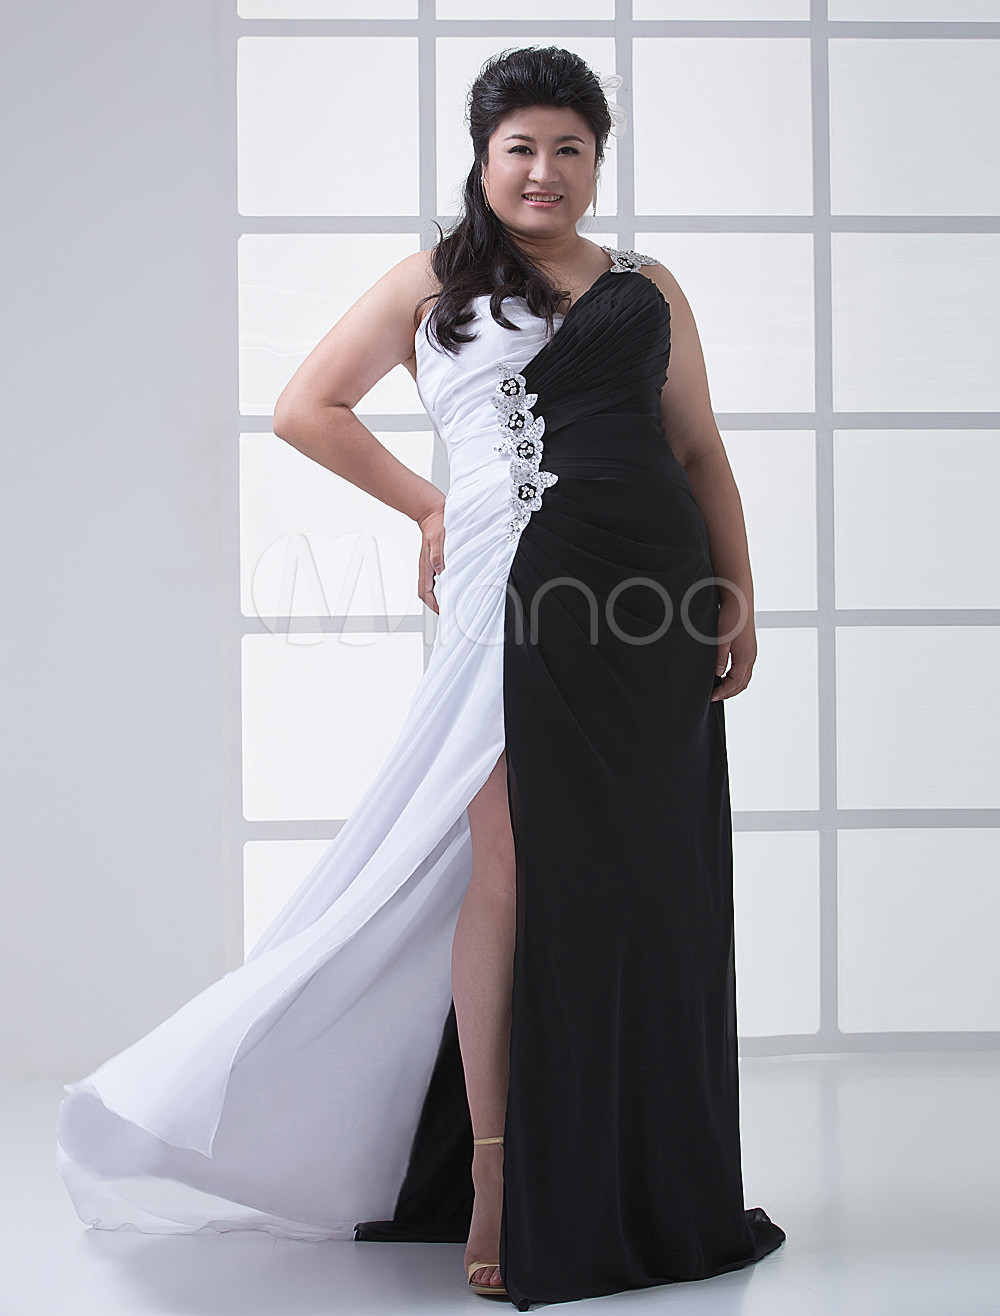 Unique Black White Chiffon Spaghetti Strap Plus Size Prom Dress plus size dresses, plus size dress,  plus size prom dress, plus size formal dress, plus size formal gown,